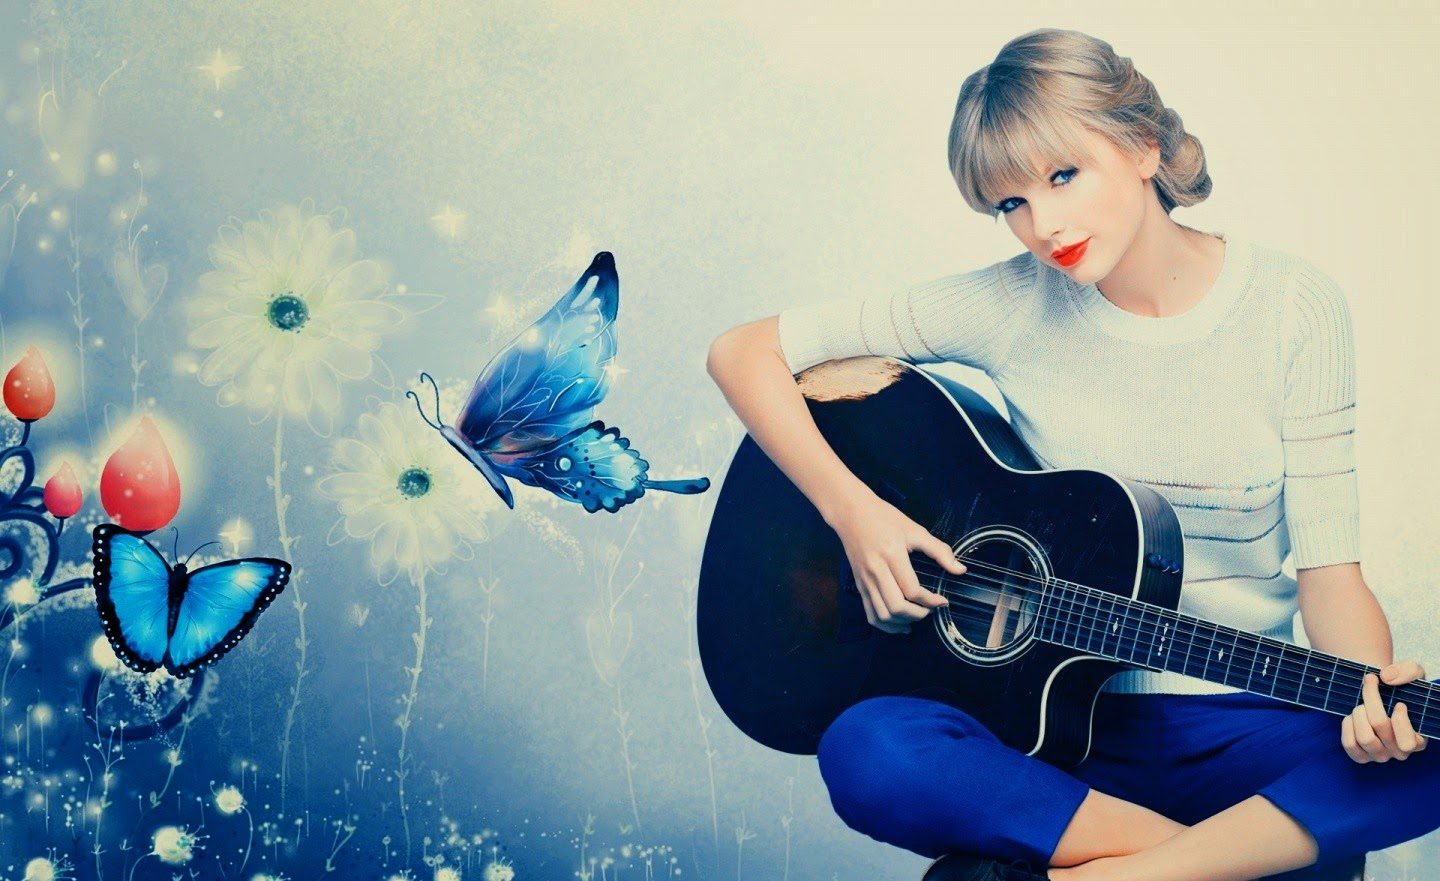 Taylor Swift HD Wallpapers | Download Free High Definition ...